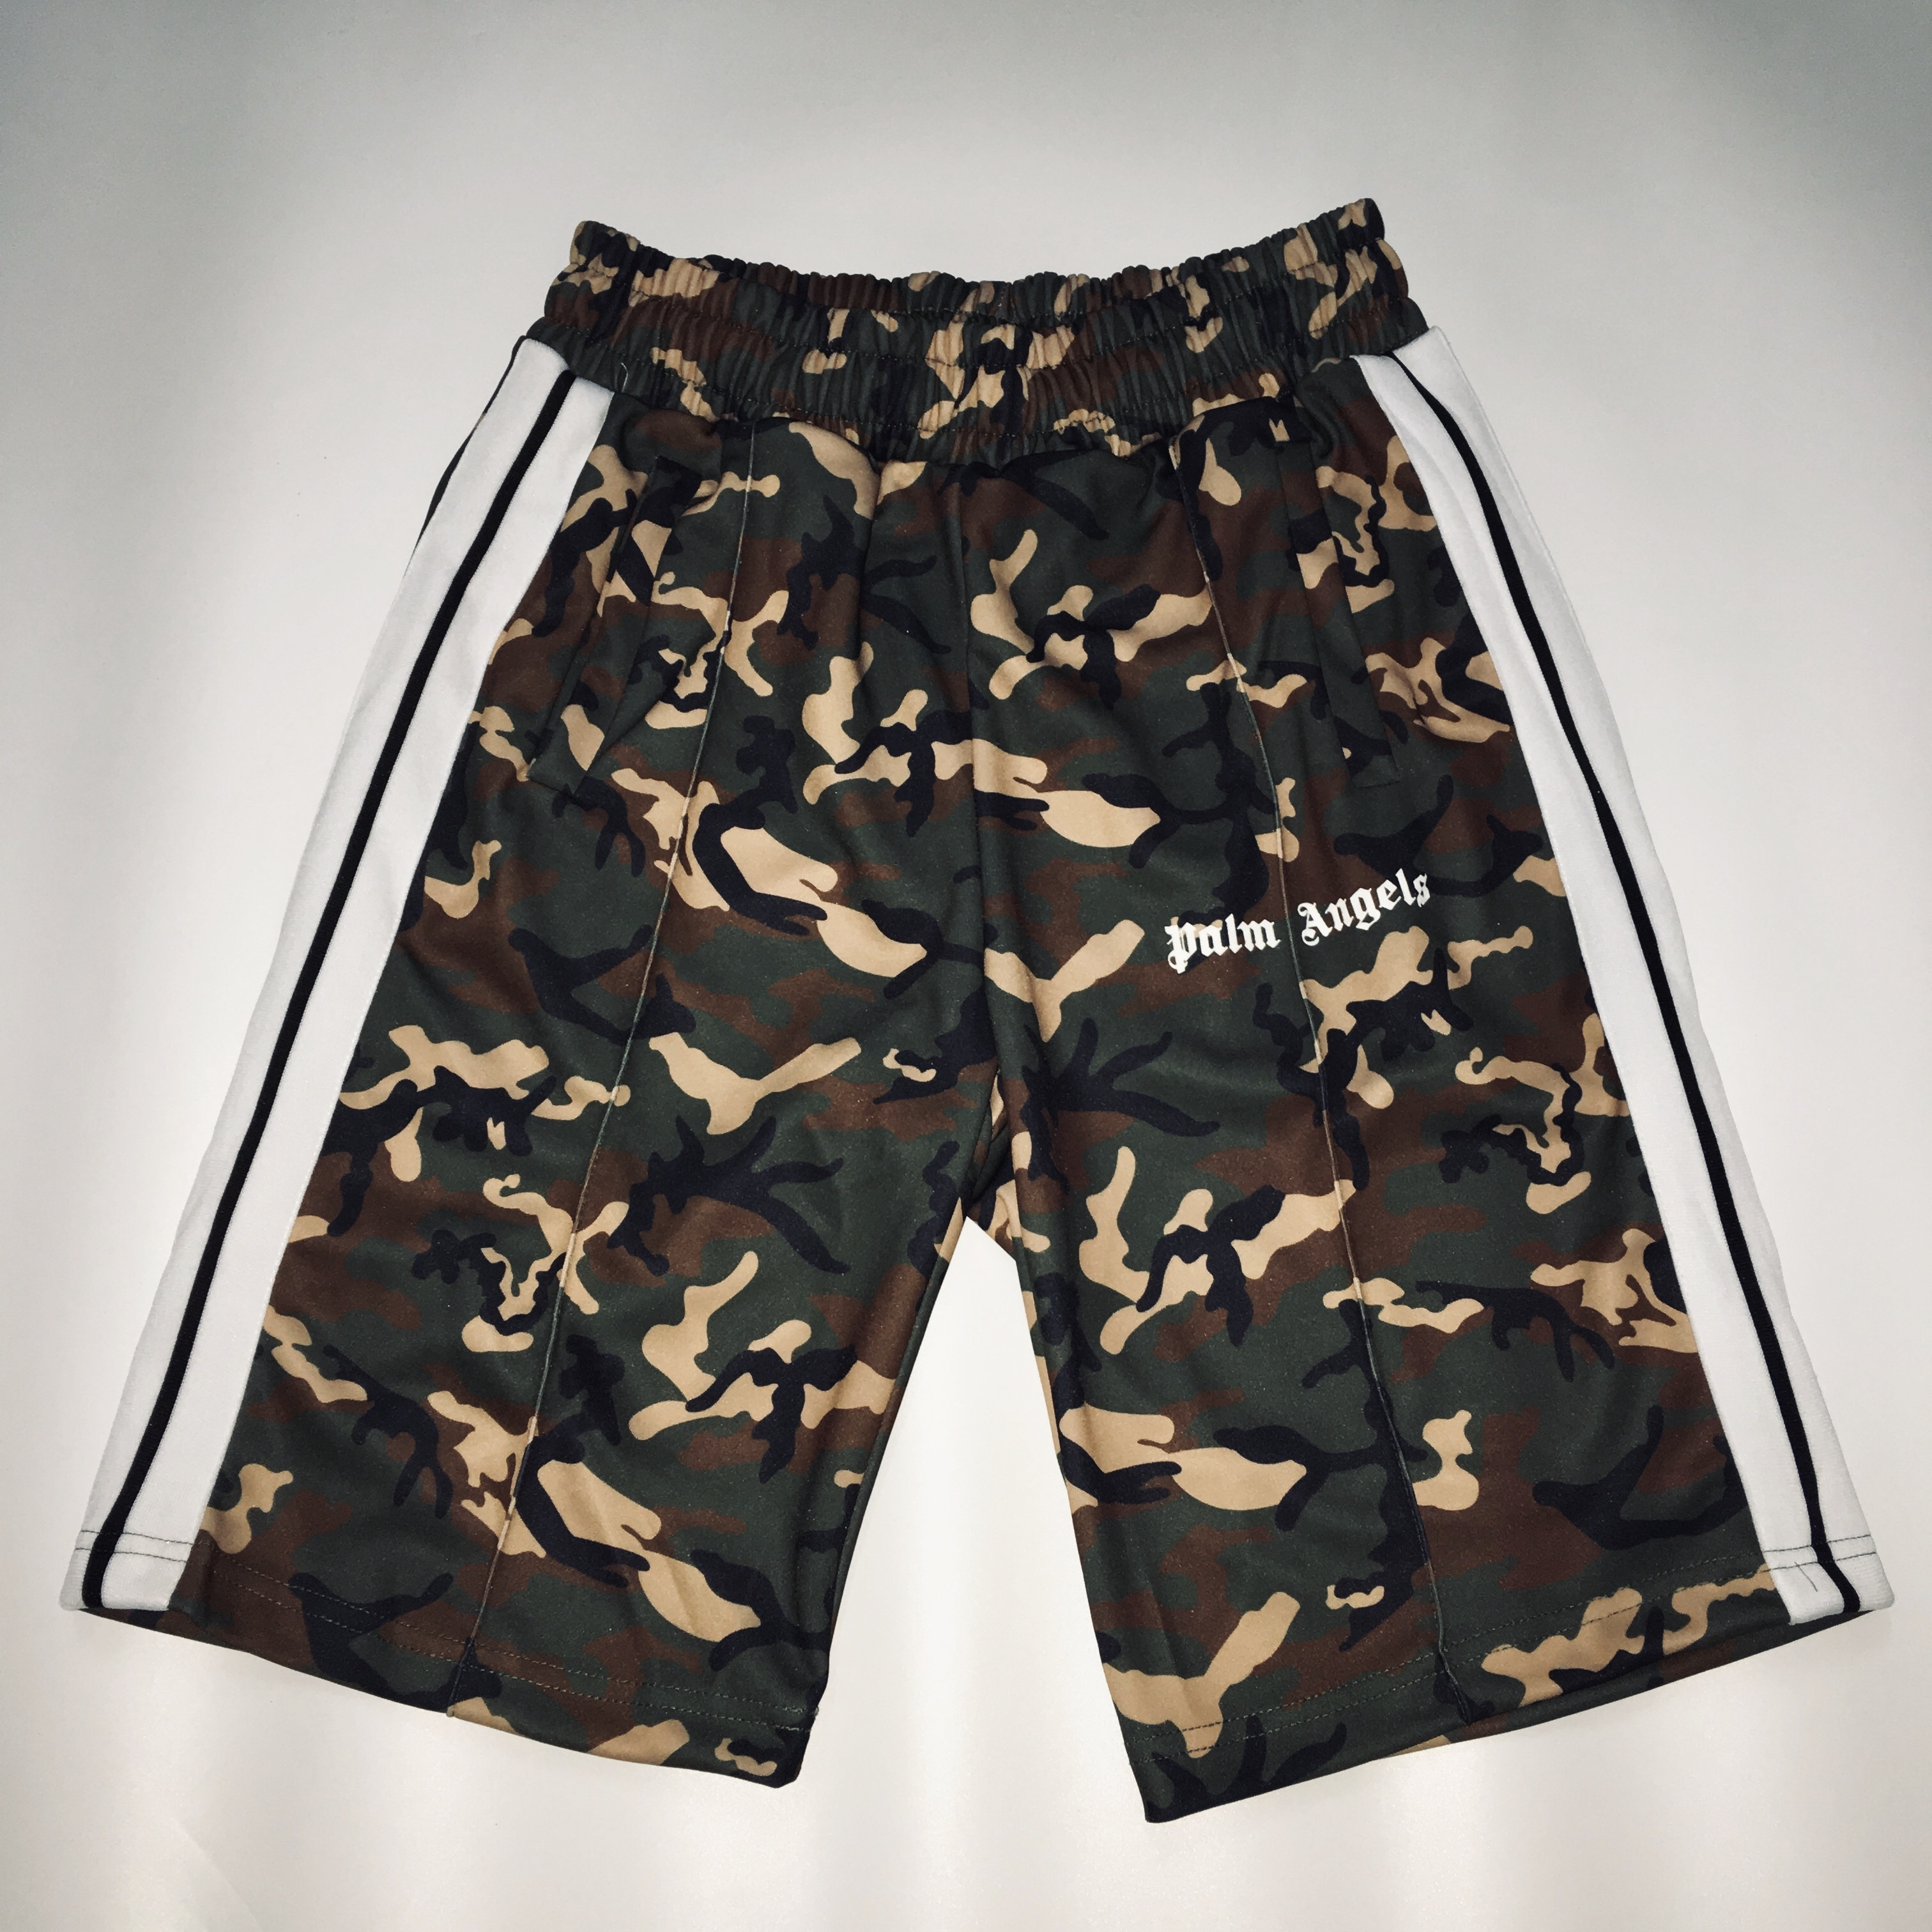 19ss Palm Angels Men Shorts Kanye West Camouflage Women Men Sports High Quality Fog Hawaii Track Gym Palm Angels Vetements